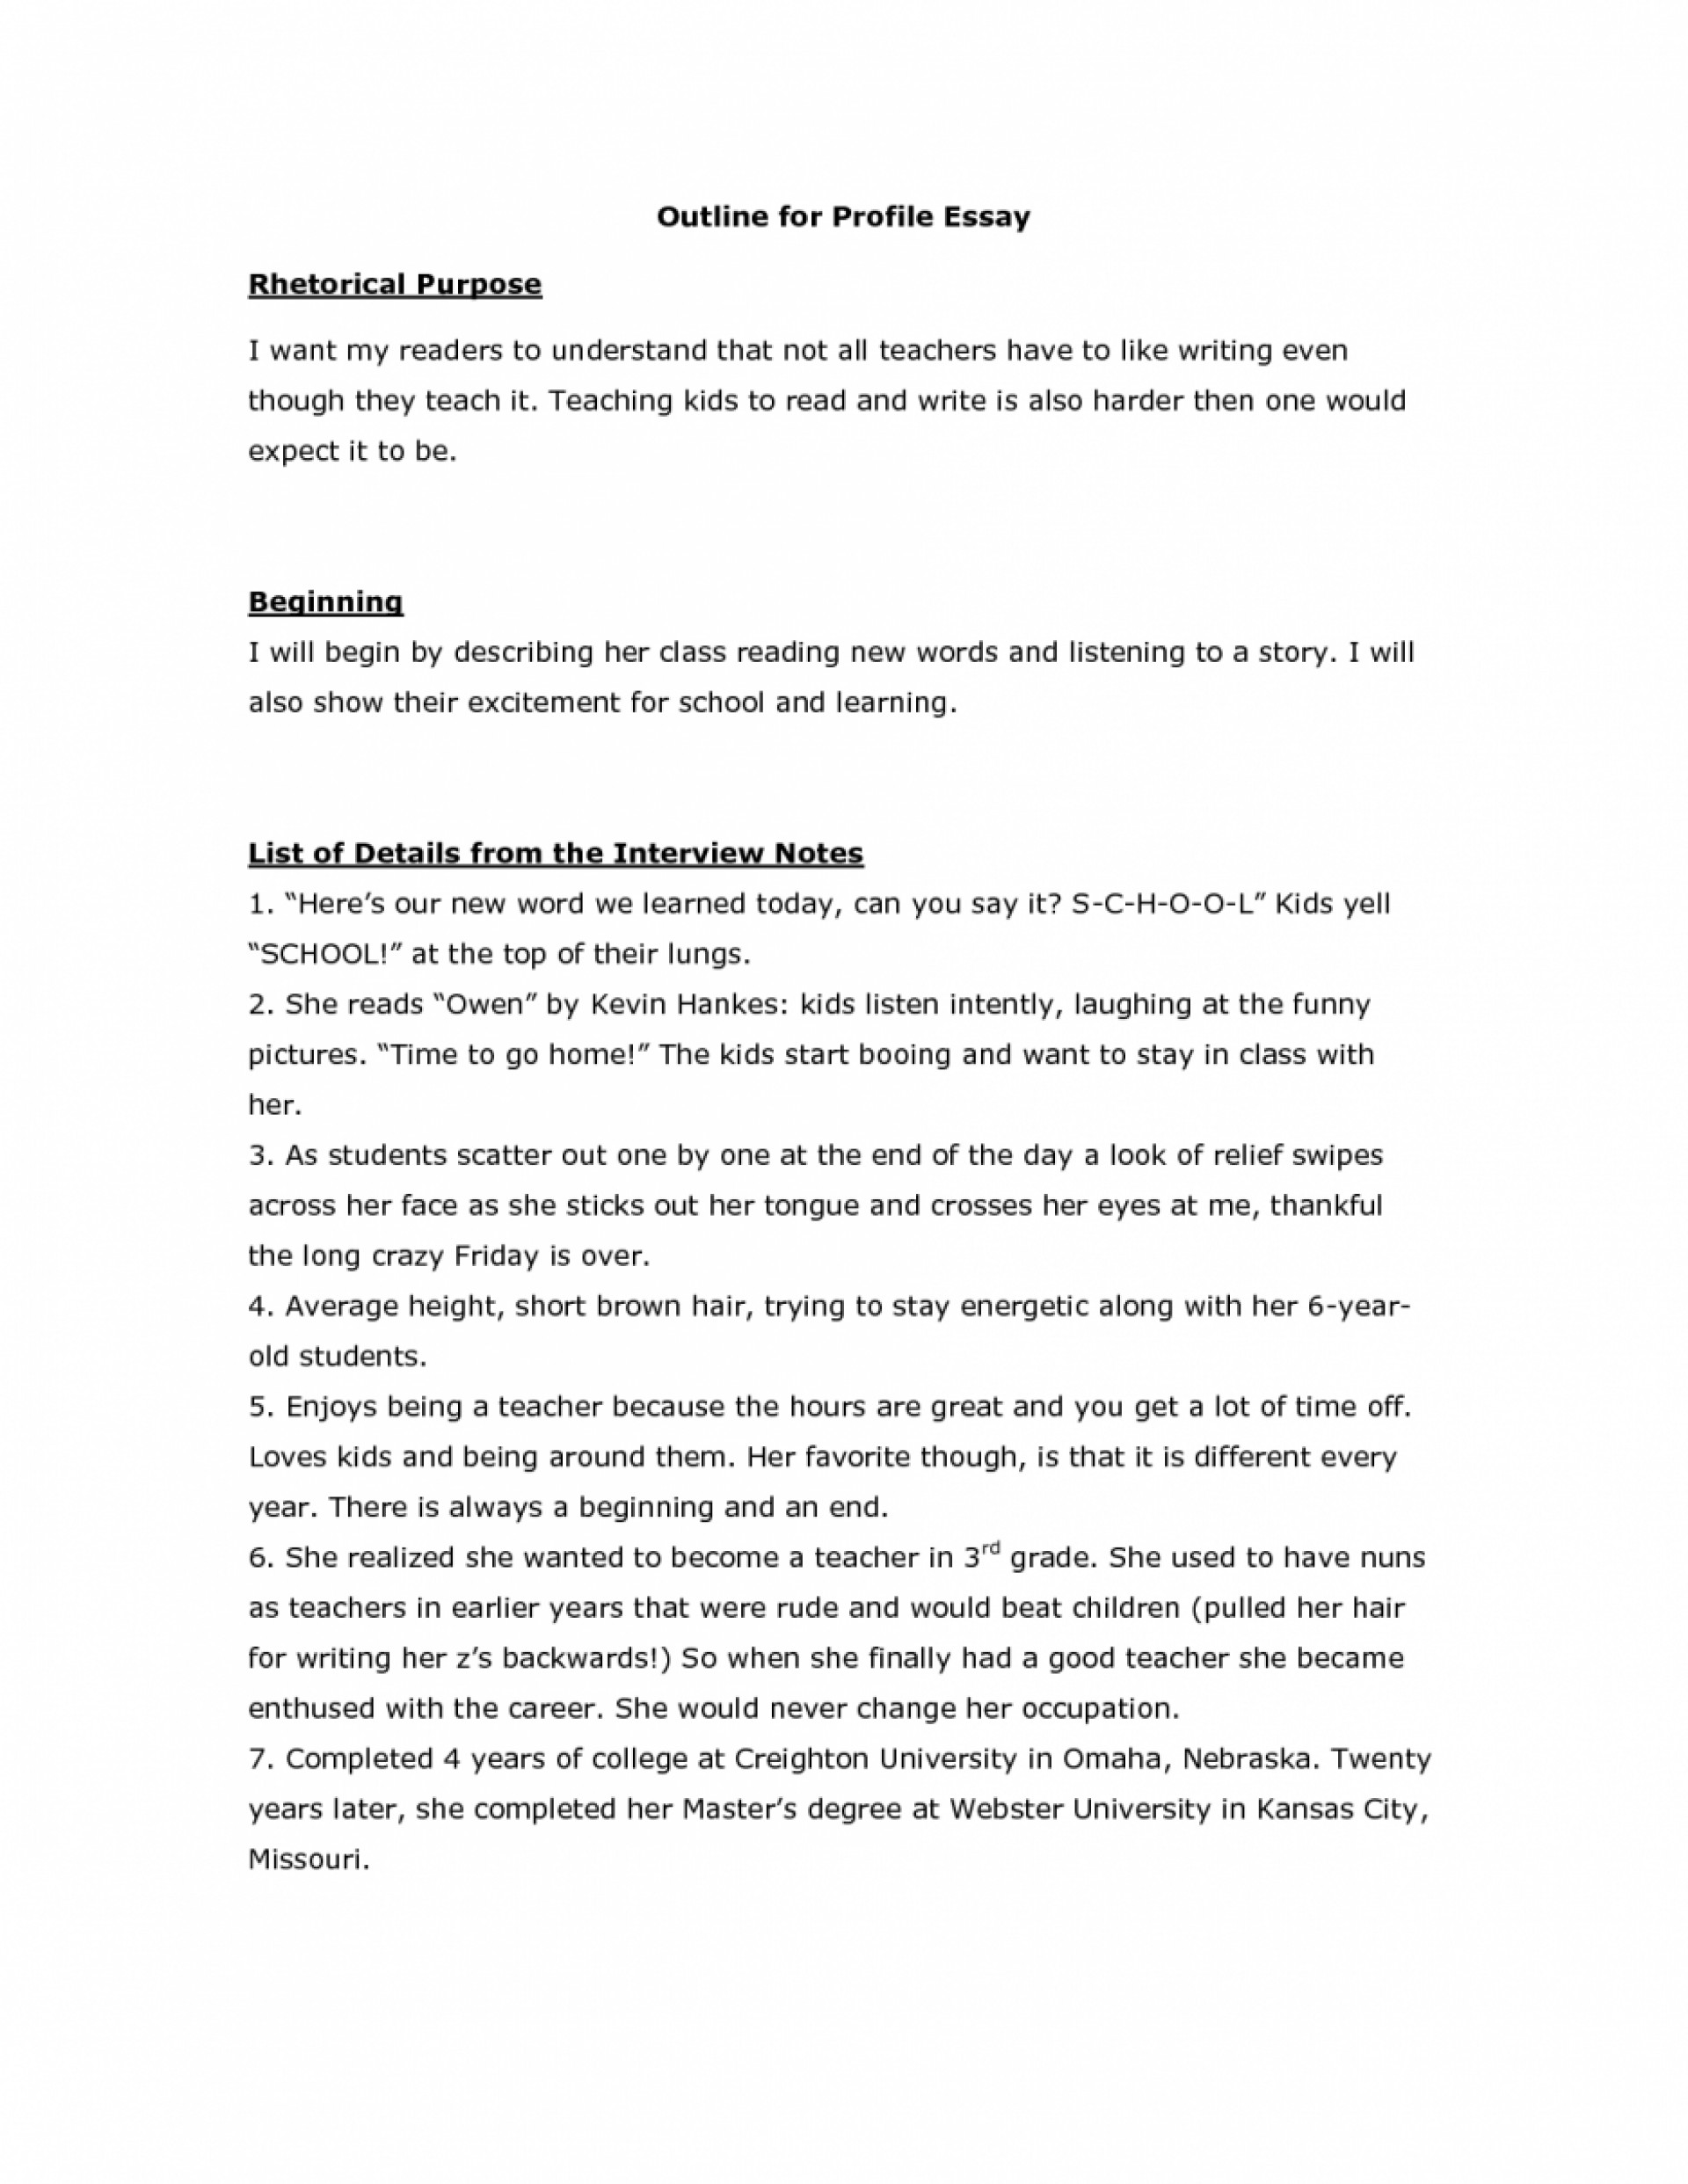 015 Profile Essay Outline Example Personality Topics Examples Of Big Five Samples My Write Wonderful 1920